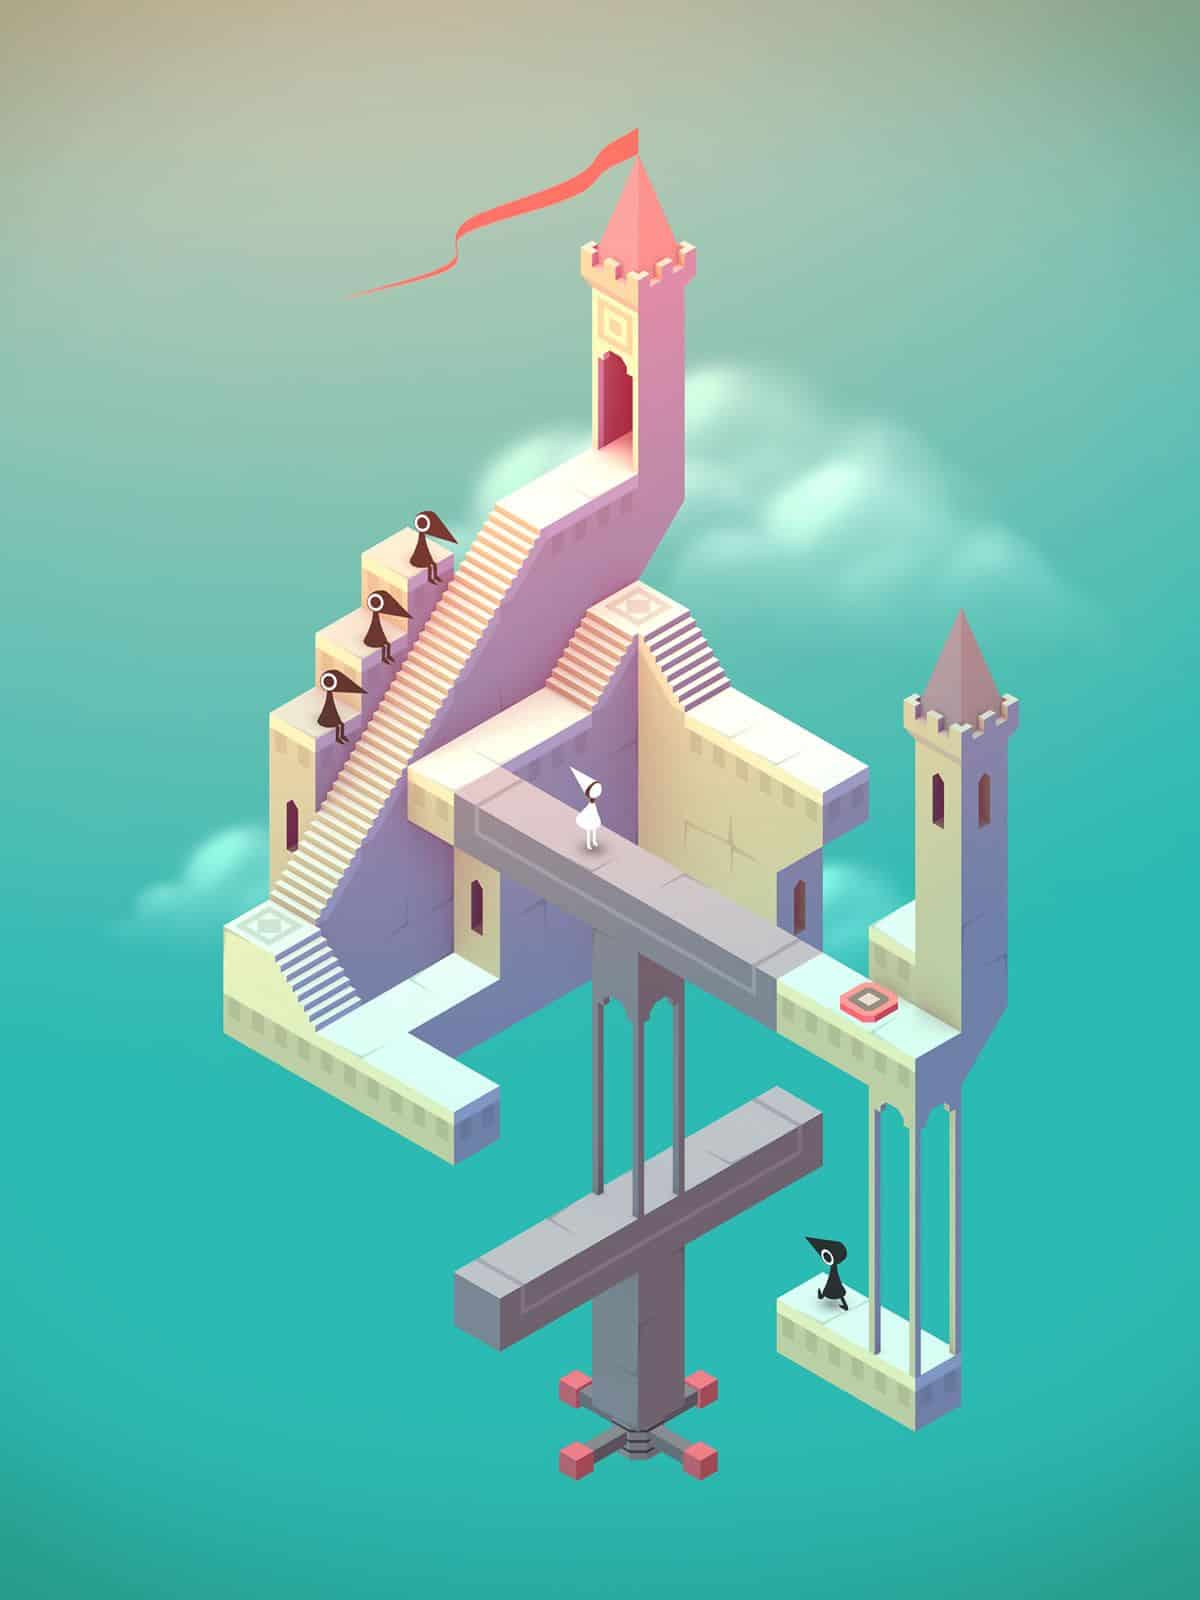 Beautiful puzzle game that helps increase mindfulness through finding different solutions